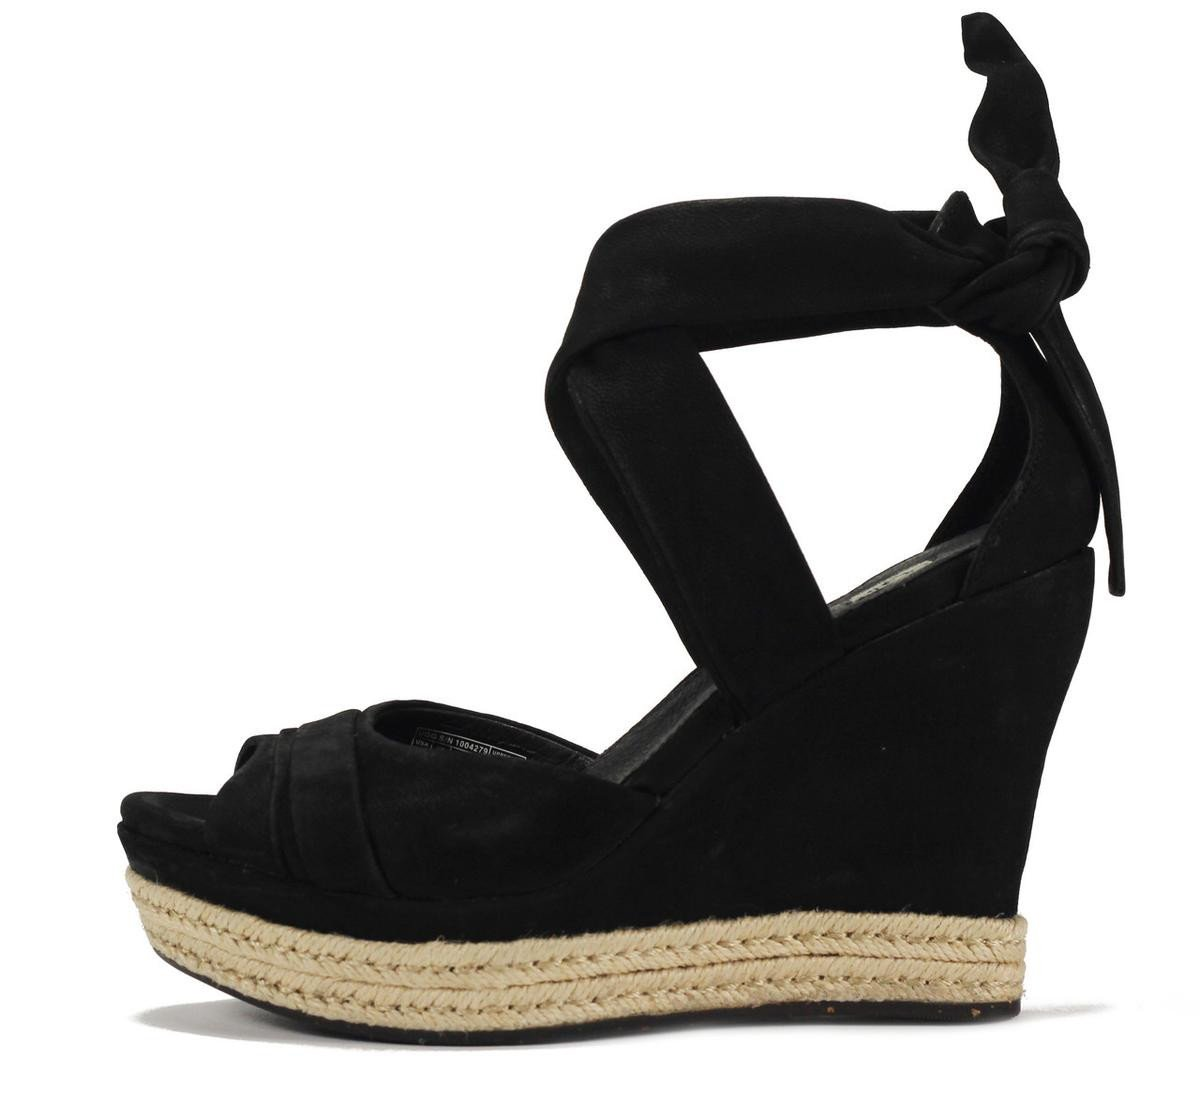 UGG Australia for Women: Lucy Black Wedge Sandal